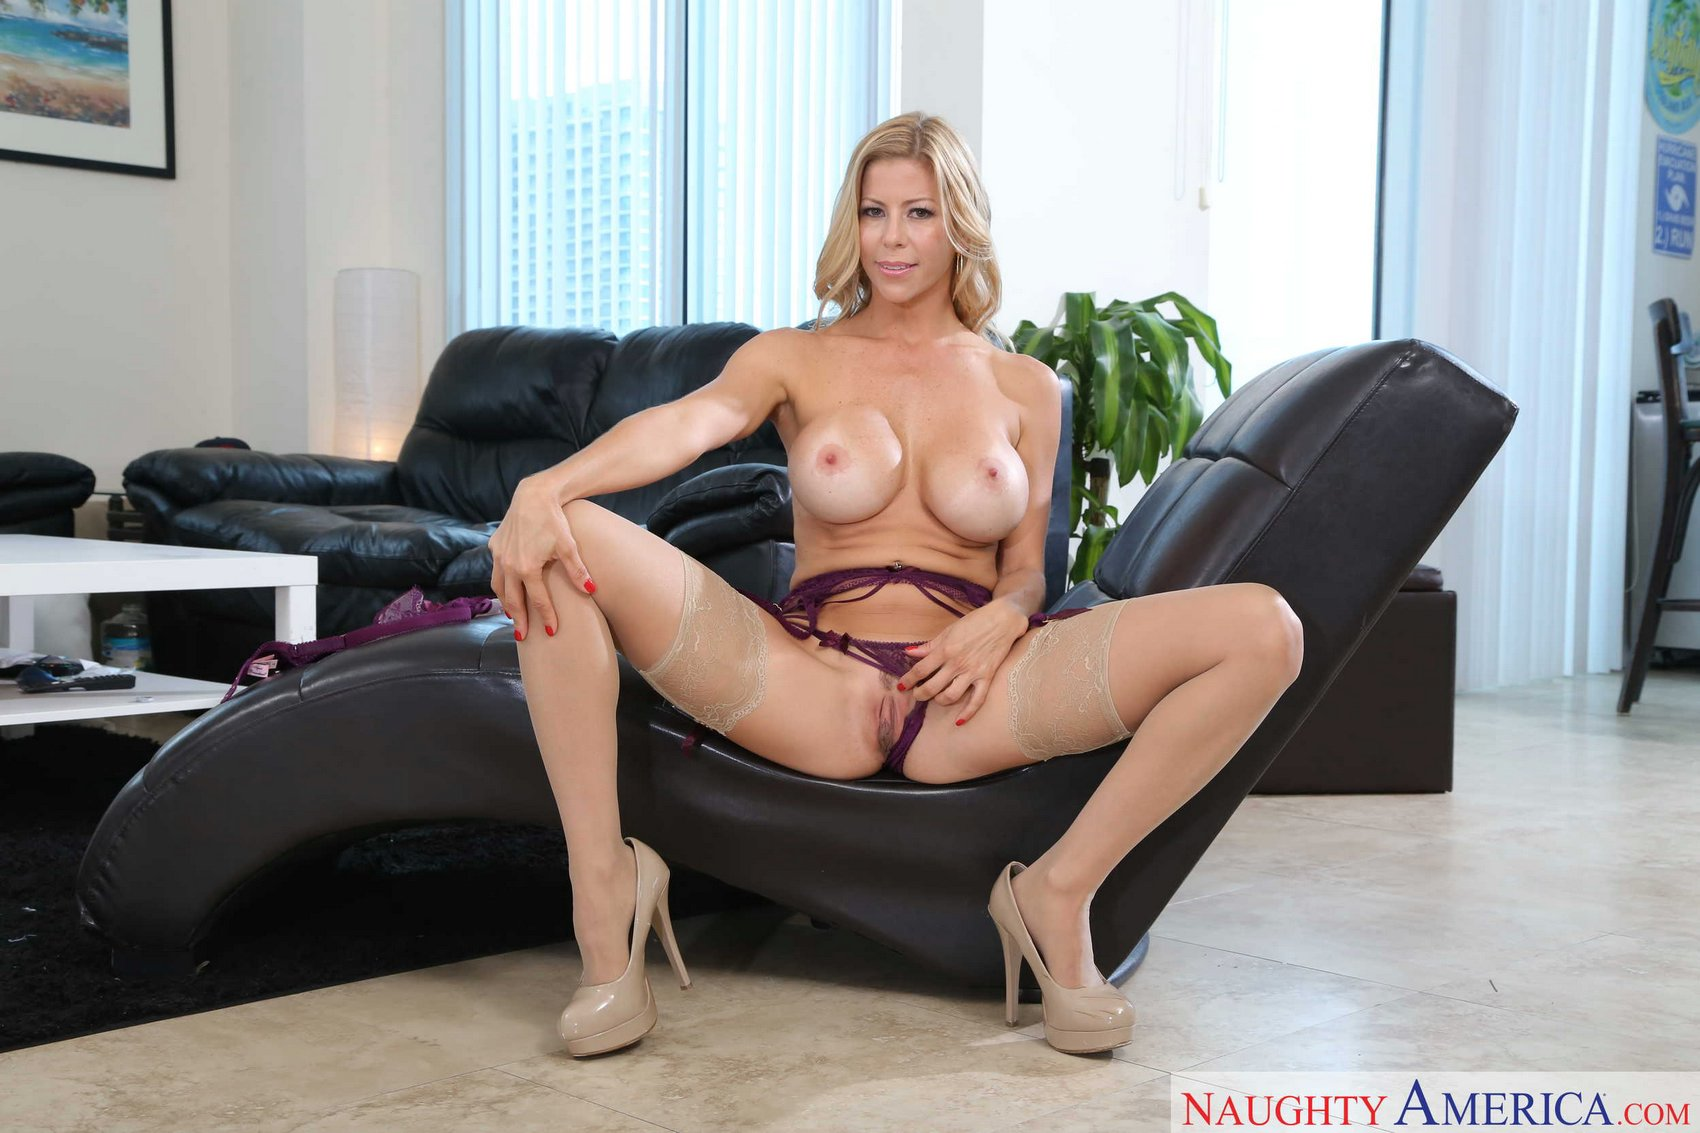 Magnificent idea Alexis silver posing in stockings opinion you